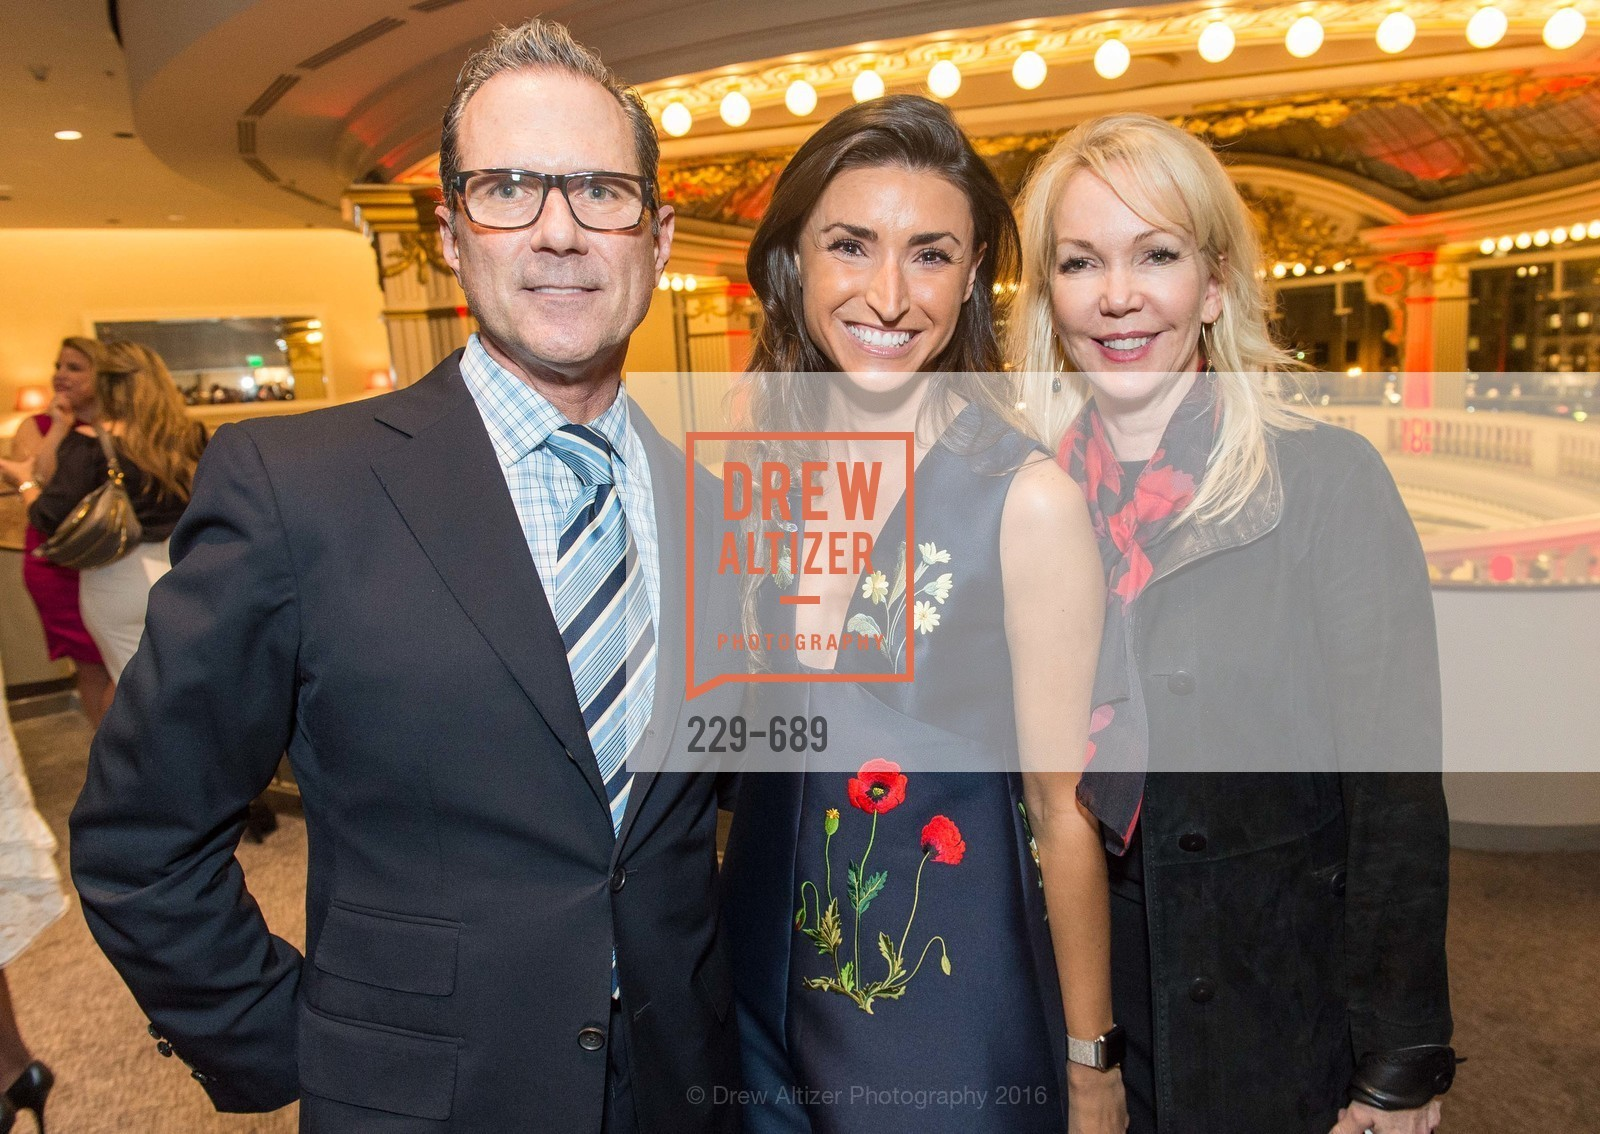 Dean Allen Taylor, Bron Wyn, Mary Christensen, Oscar de la Renta Cocktail Party with Boaz Mazor, The Rotunda Restaurant, January 19th, 2016,Drew Altizer, Drew Altizer Photography, full-service event agency, private events, San Francisco photographer, photographer California